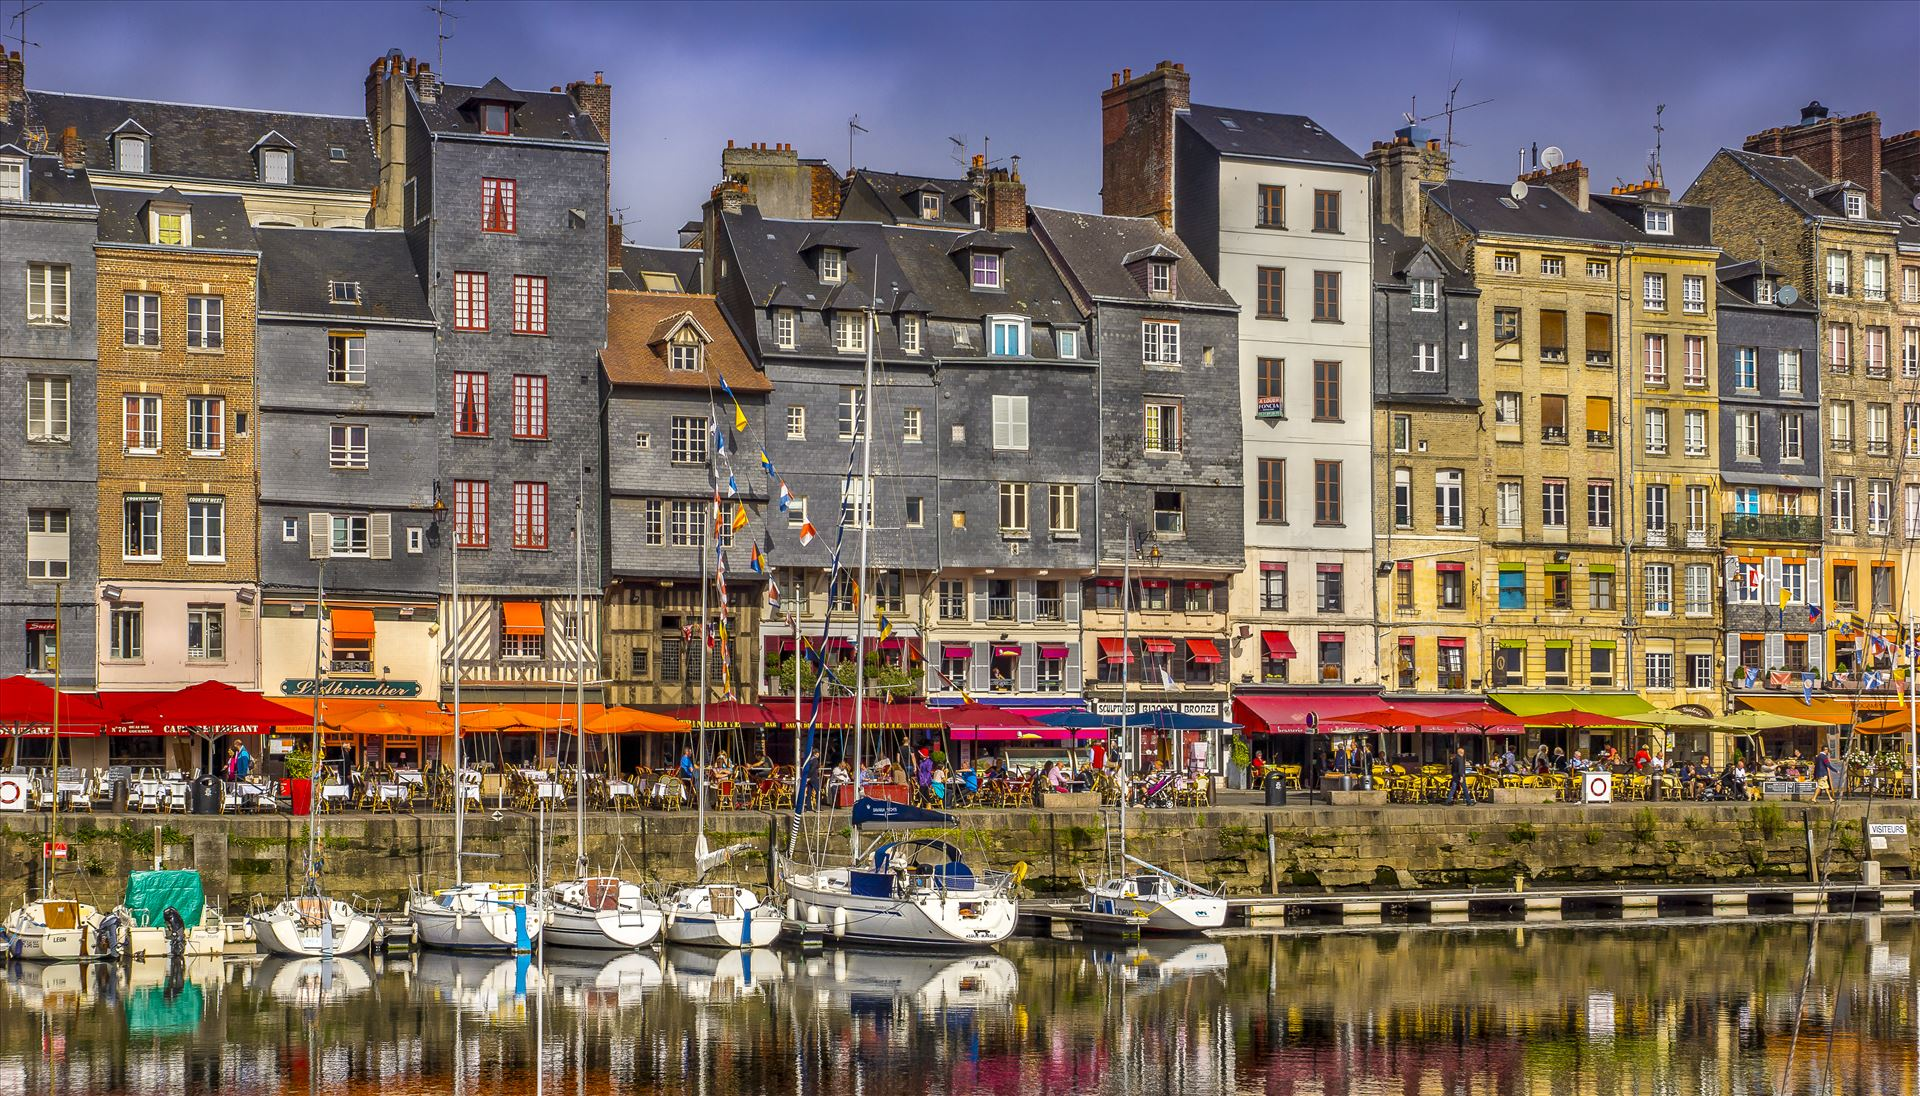 Honfleur, France - Ports don't come any prettier than Honfleur on the Seine's estuary by Buckmaster